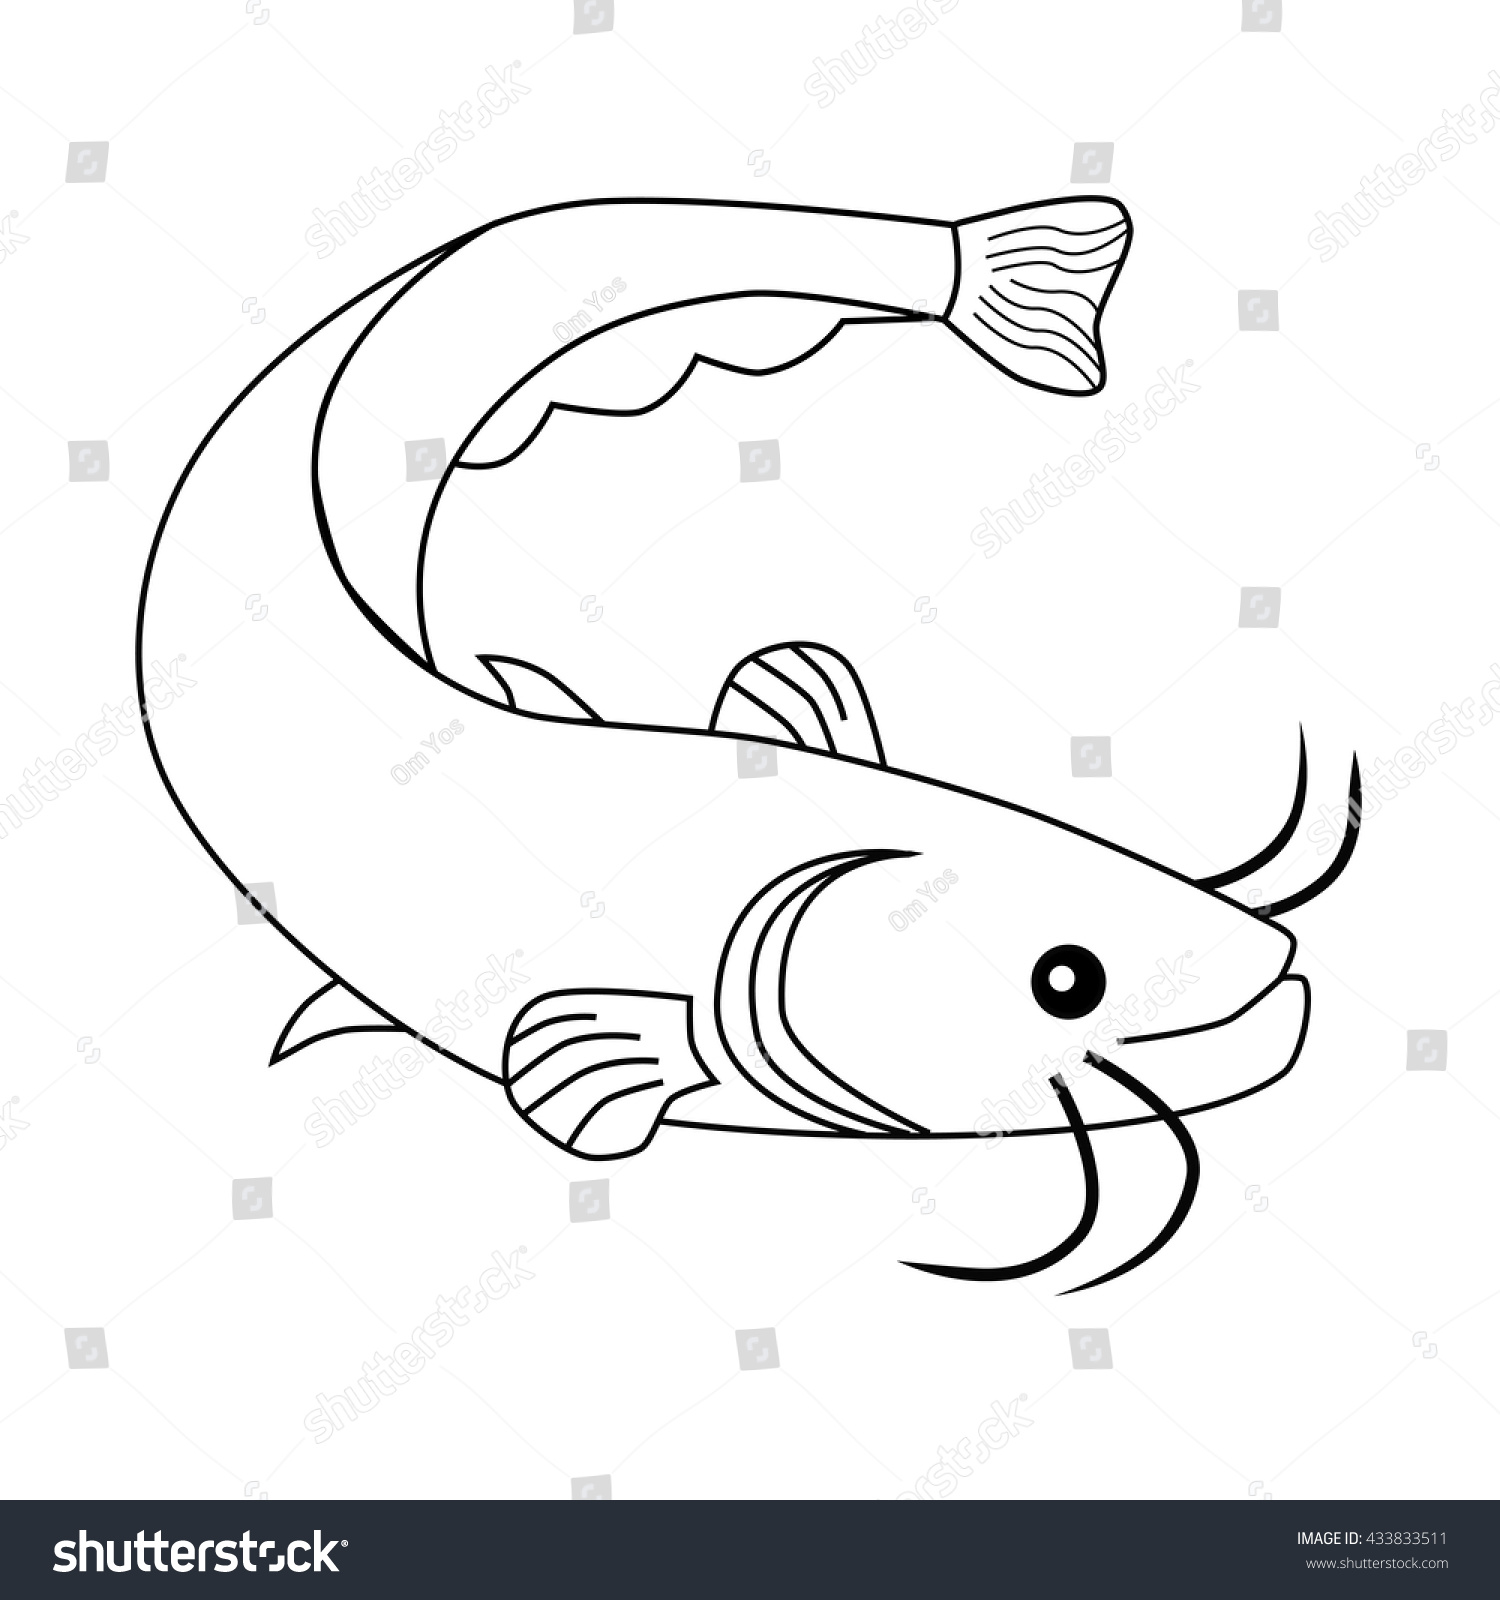 outline cat fish stock vector 433833511 shutterstock